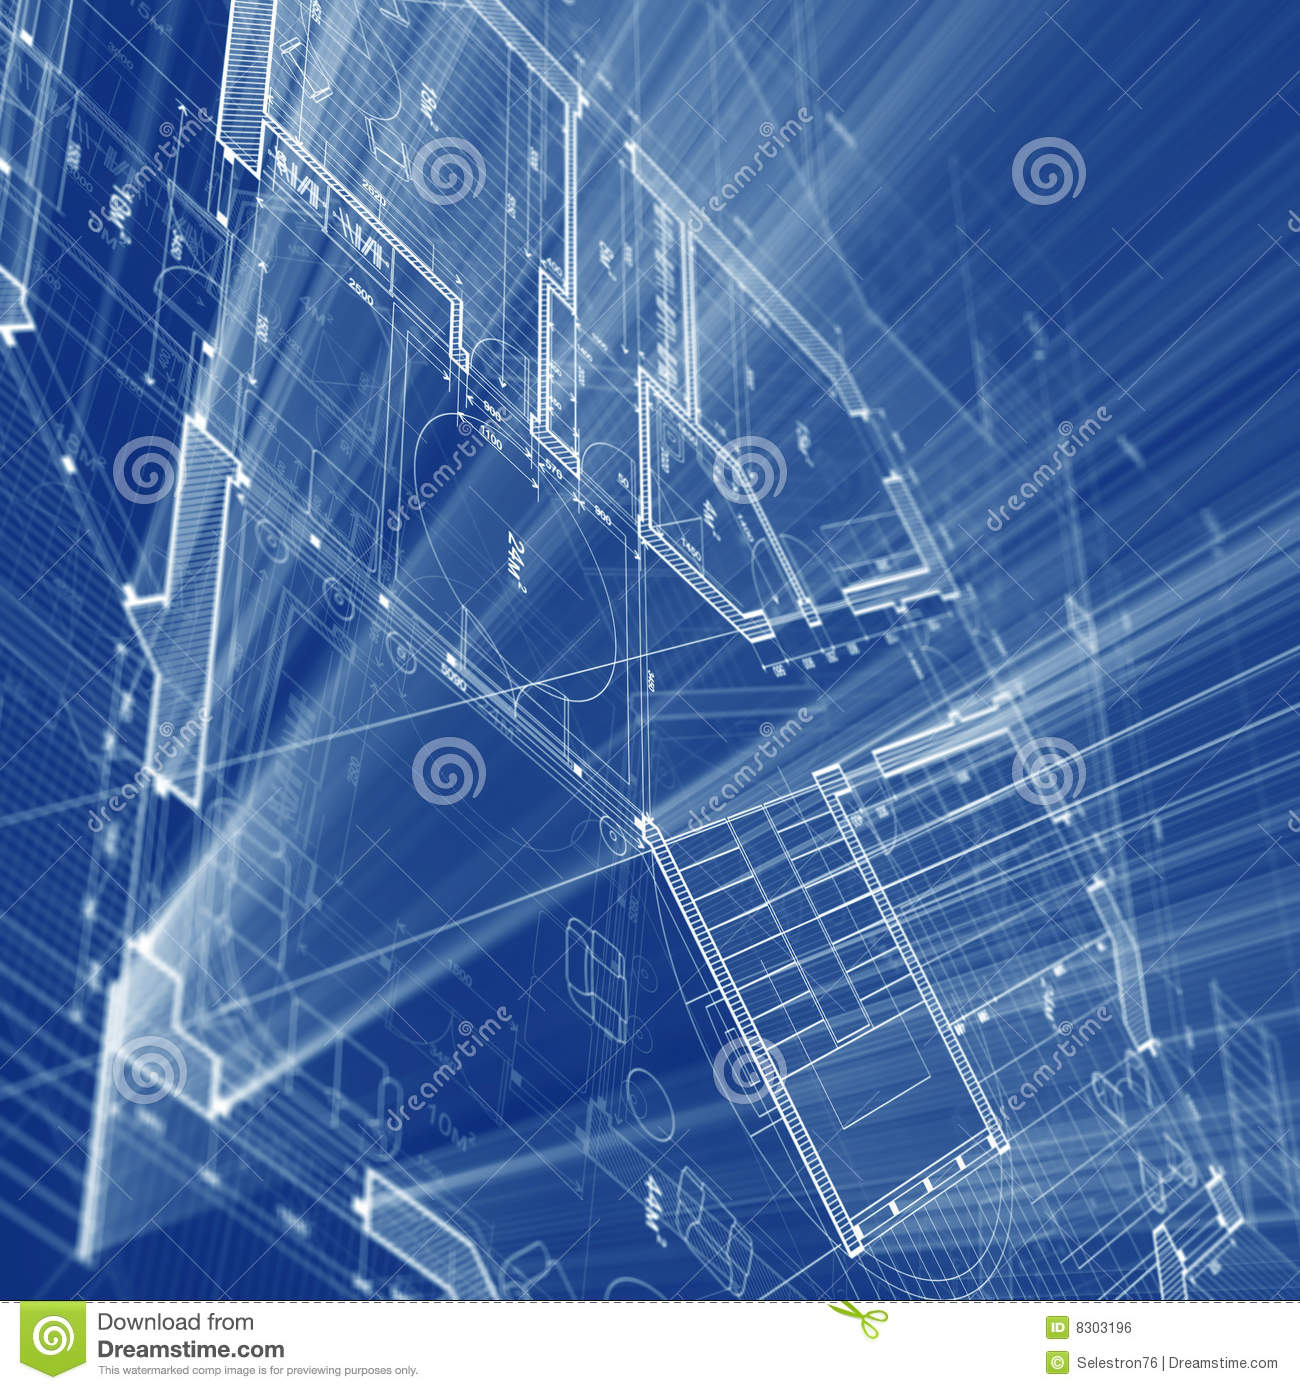 Architecture blueprint stock illustration image of for Print architectural plans